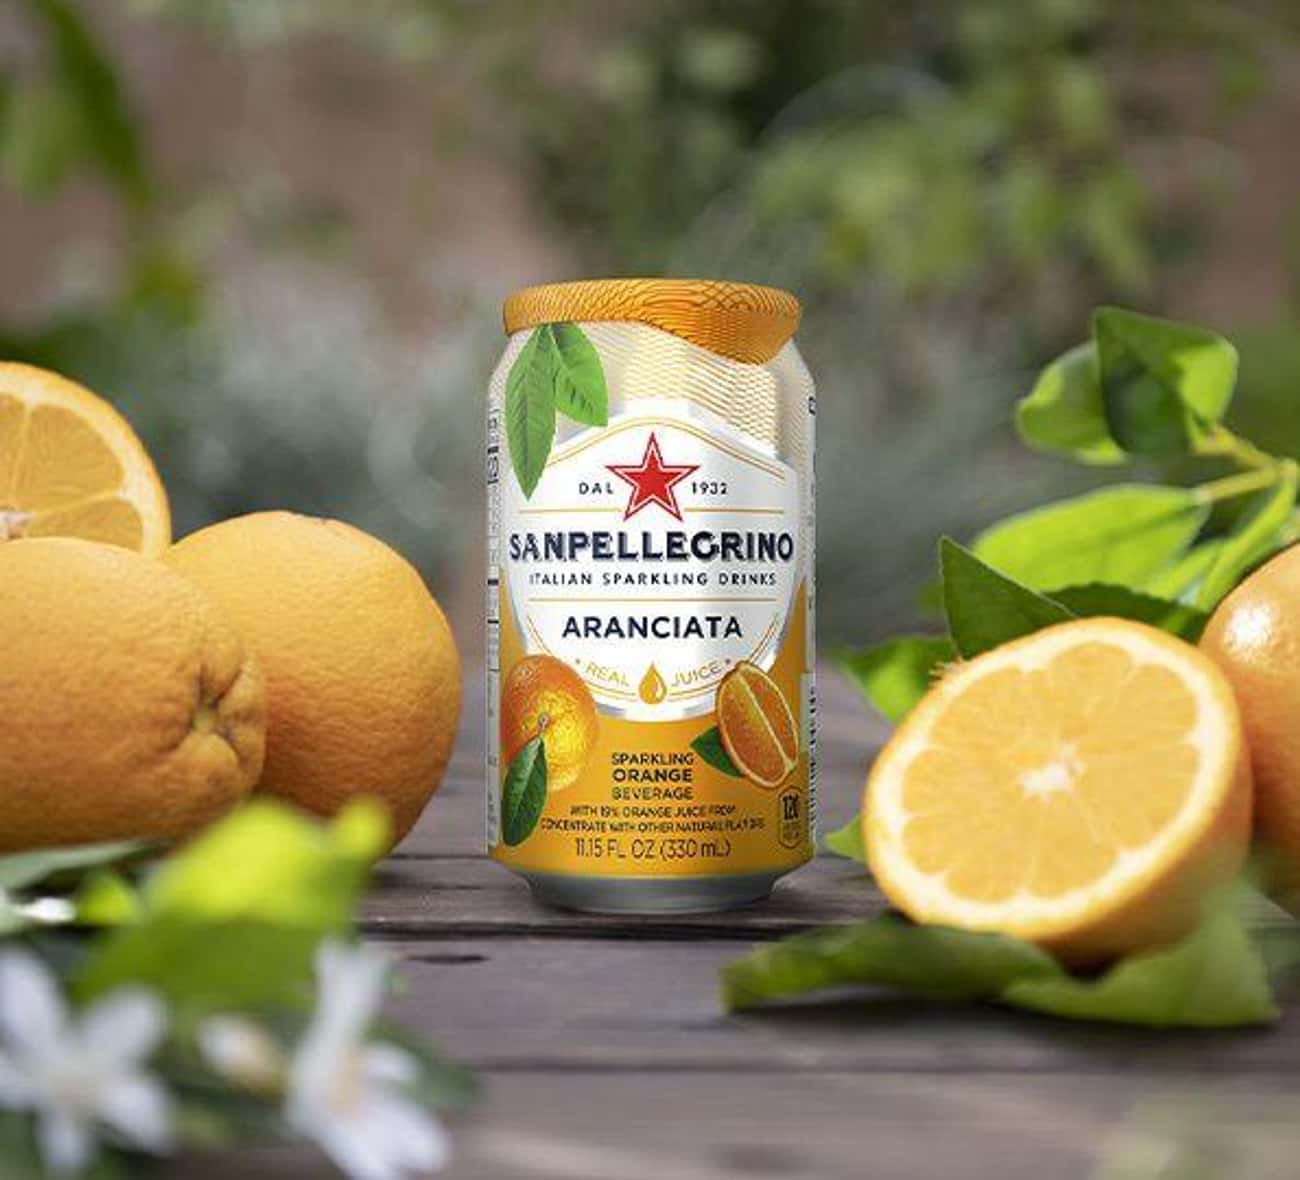 Aranciata is listed (or ranked) 4 on the list The Best San Pellegrino Flavors